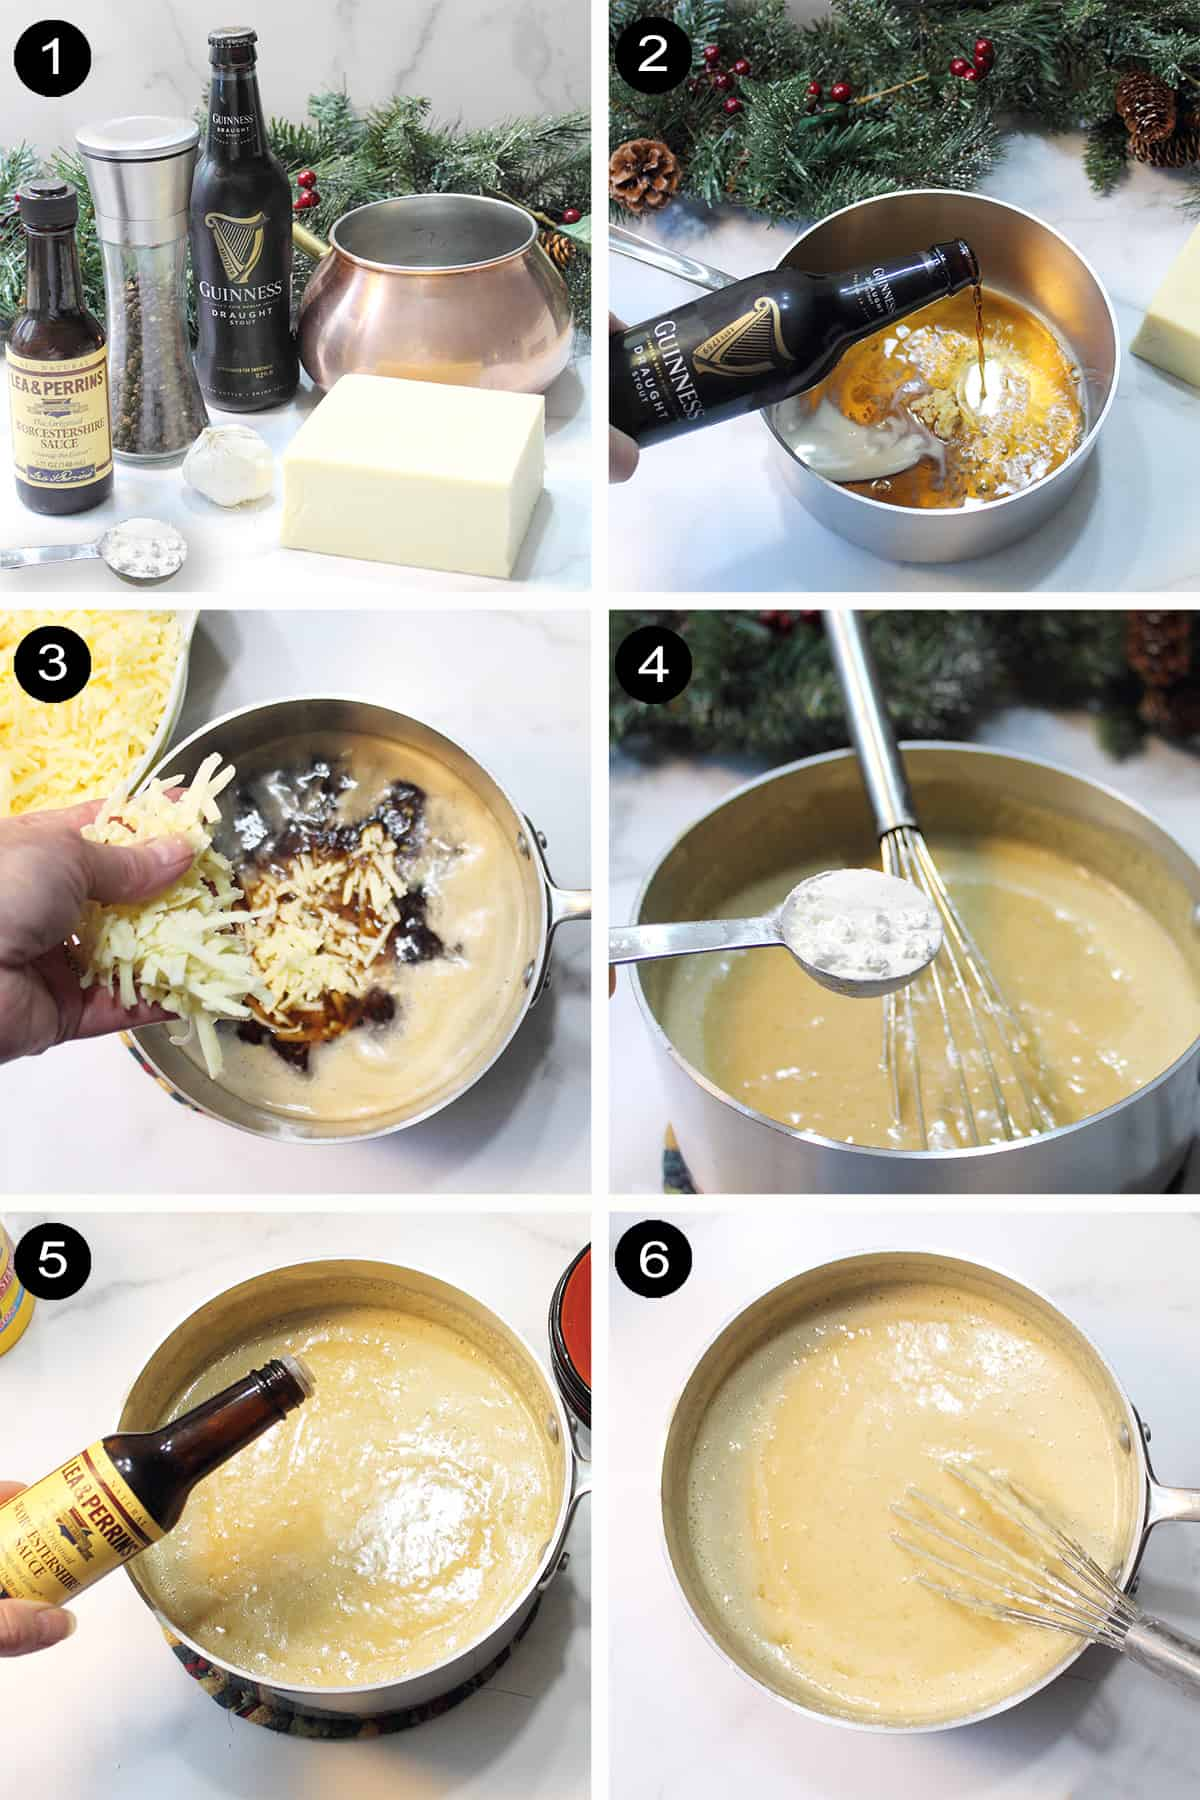 How to make cheddar cheese beer fondue.